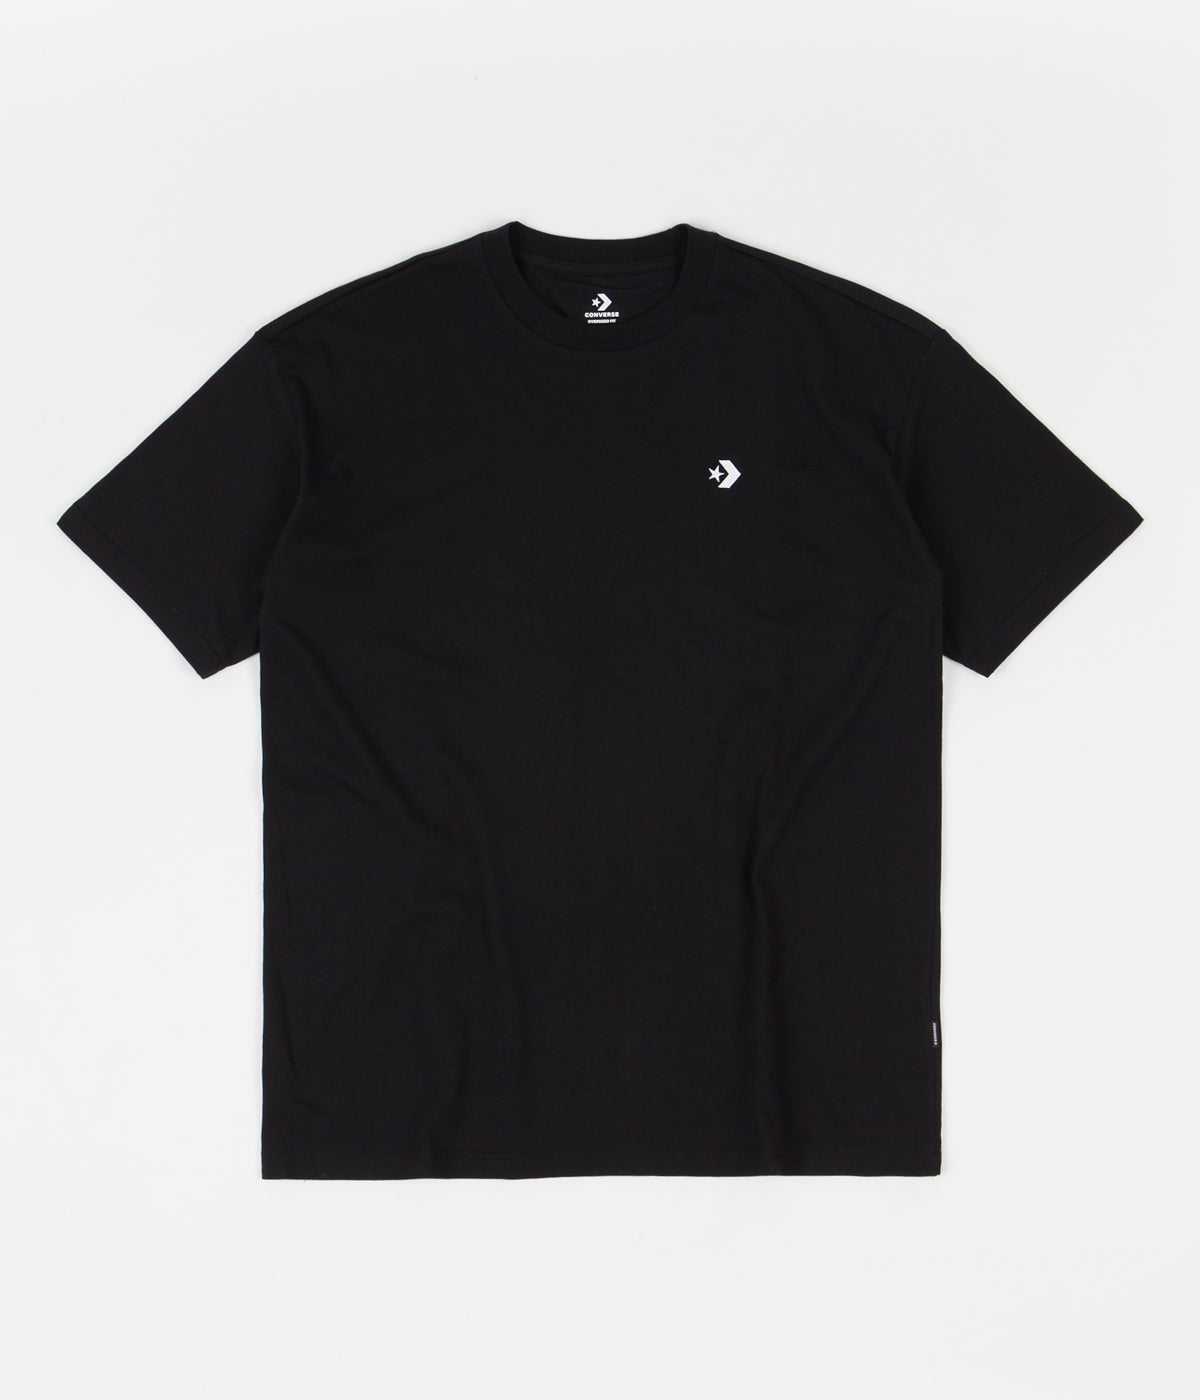 Converse Star Chevron Embroidered Oversized T-Shirt - Black